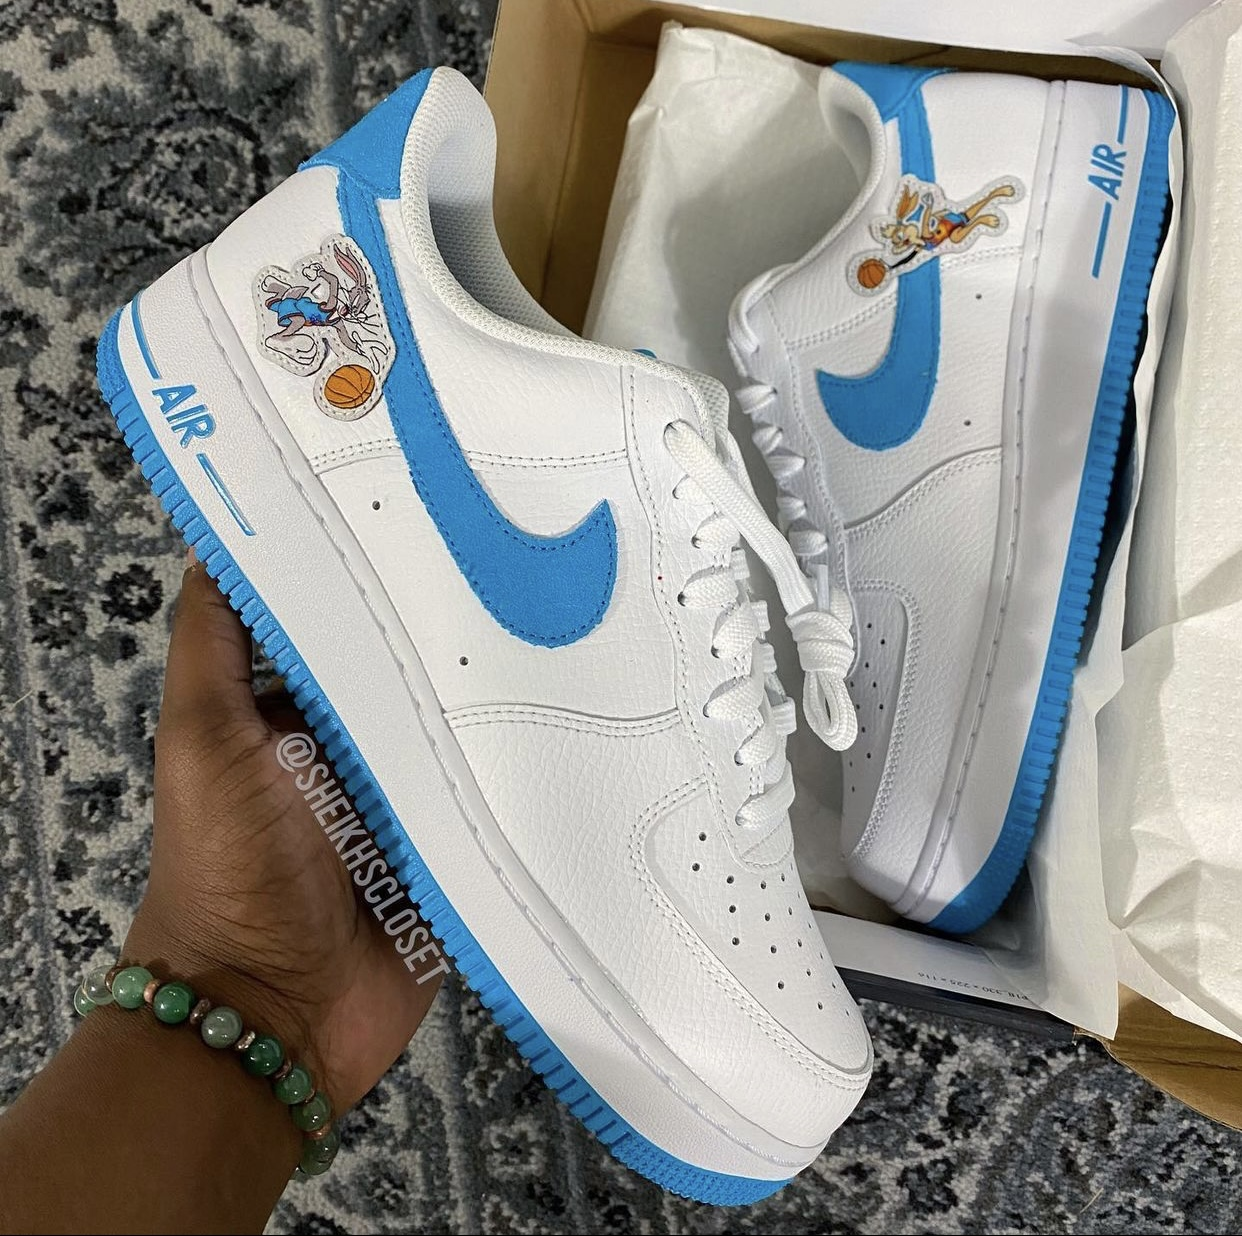 Space Jam Nike Air Force 1 Low Hare Bugs Lola Bunny Release Date